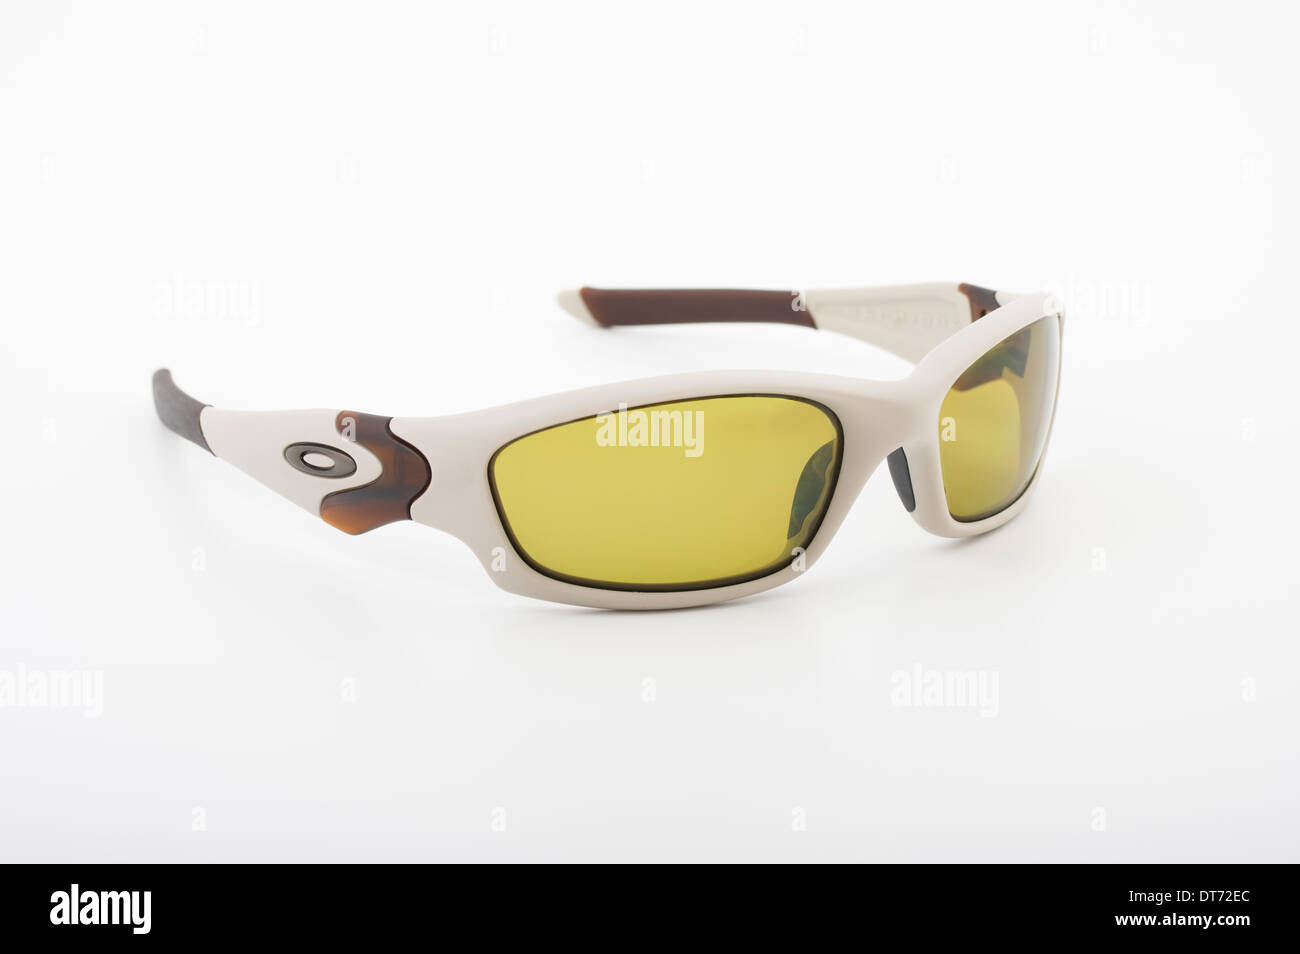 e0e6c2aa02 Oakley Straight Jacket Sunglasses with yellow polarized lenses - Stock Image